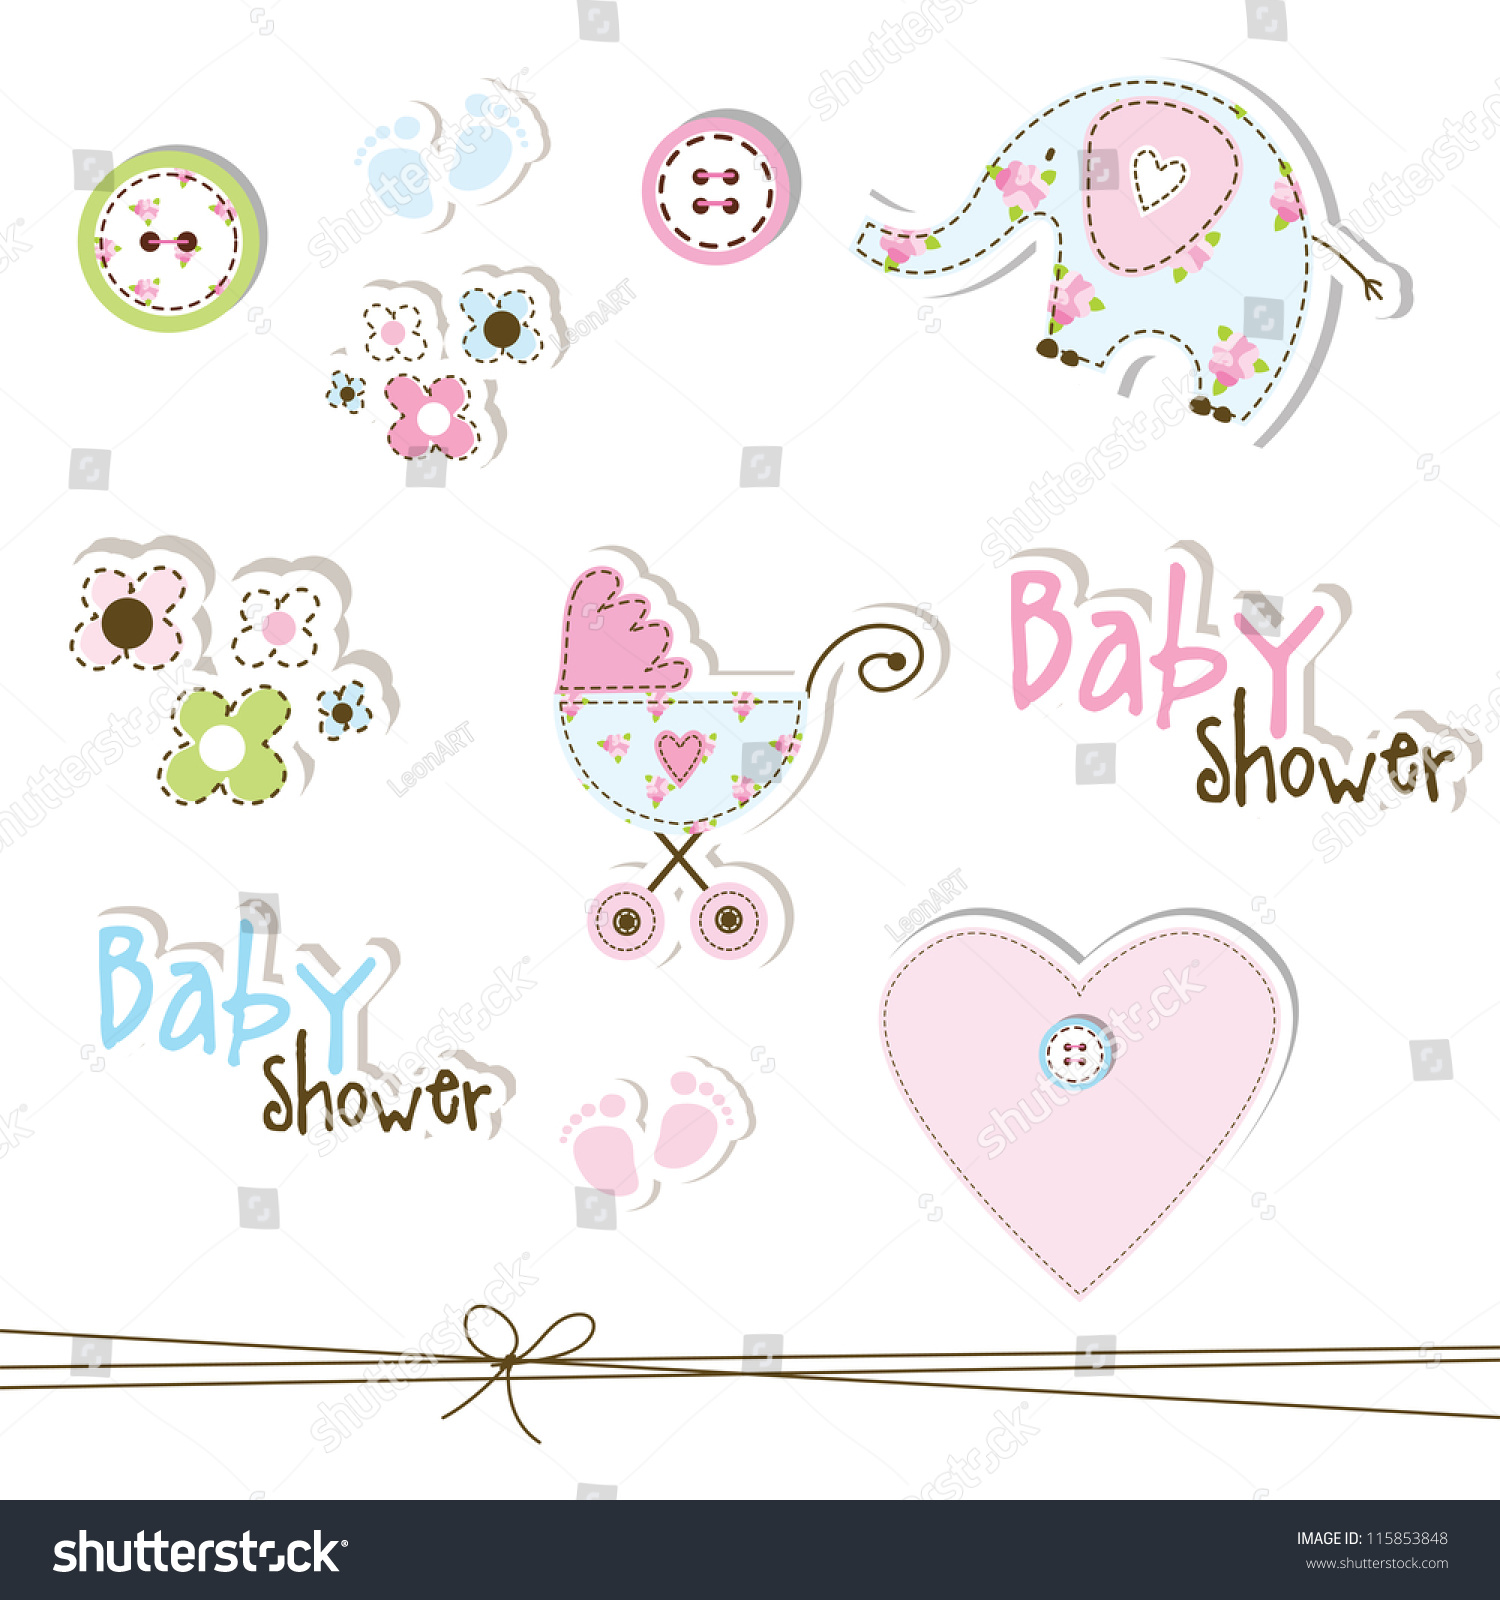 stock photo cute unique baby shower drawings for baby shower